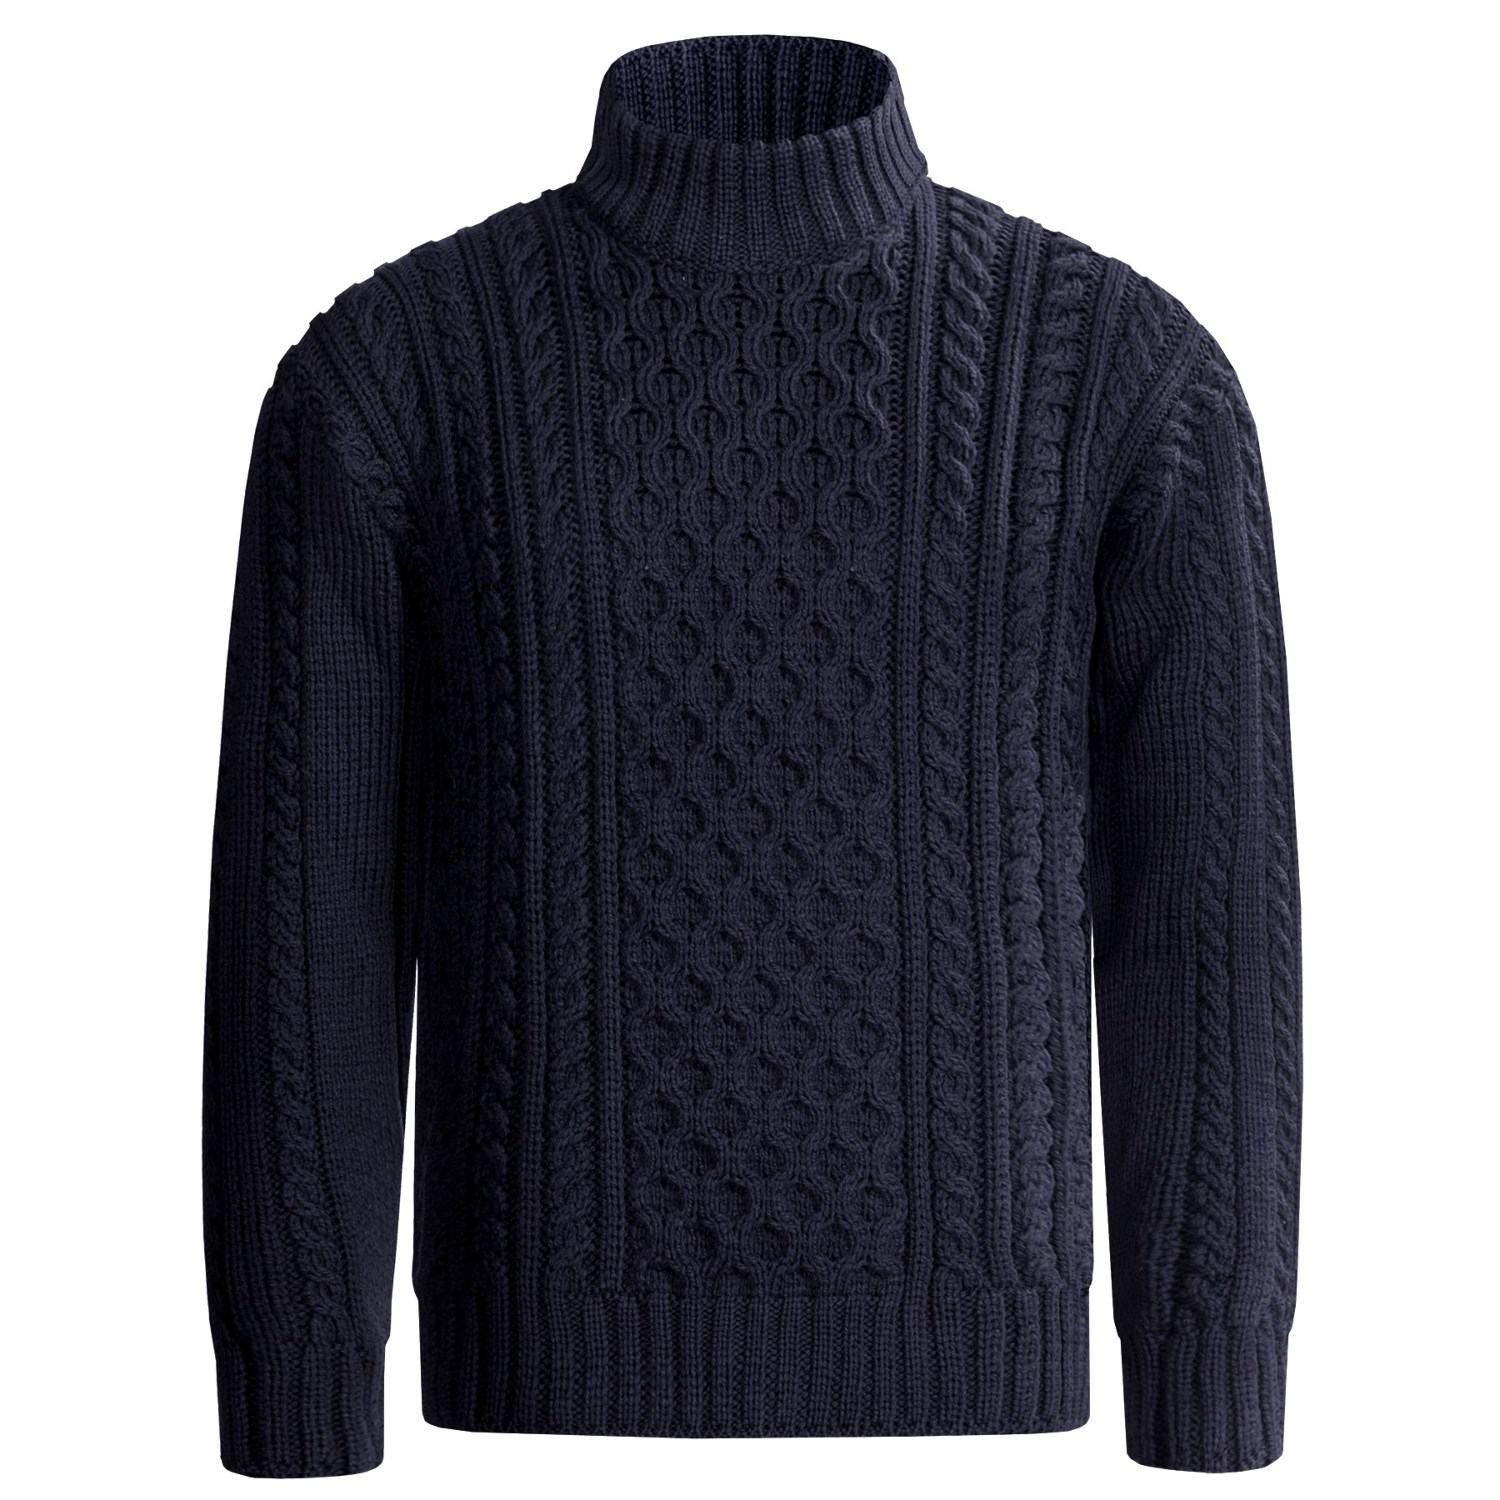 Take on the season in style wearing a sharply tailored merino wool sweater from Banana Republic. Classic and Cozy Mainstays Redefined in Sleek Fits Achieving effortless chic style is made simple by integrating a classic merino wool sweater into your ensembles this season.